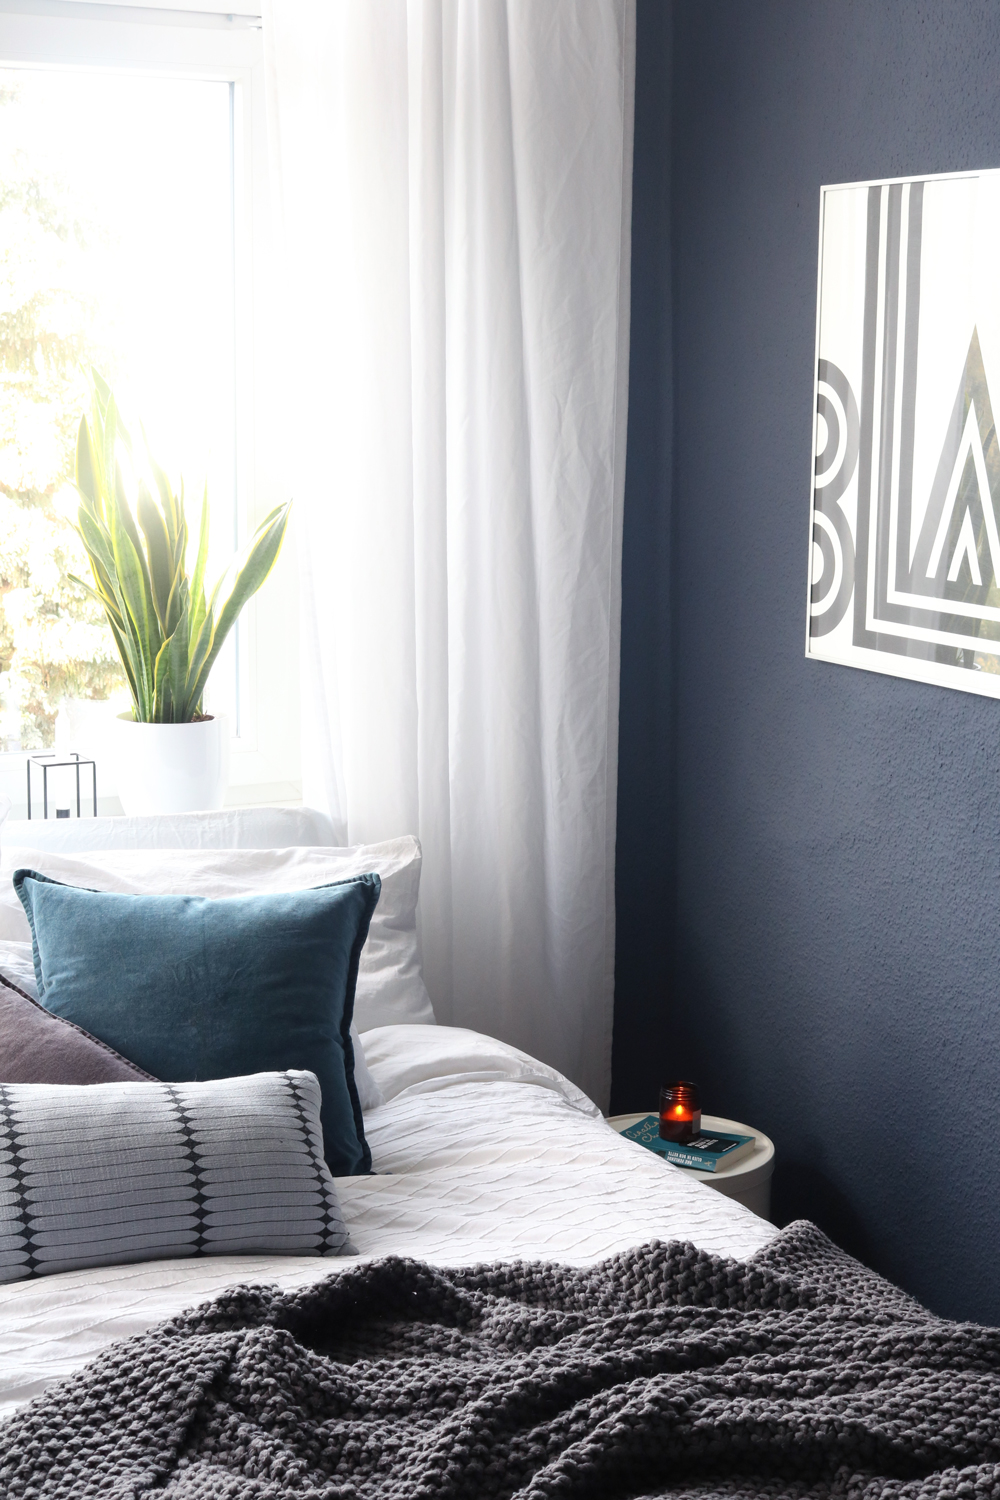 blue bedroom zeit f r ein umstyling pretty nice. Black Bedroom Furniture Sets. Home Design Ideas